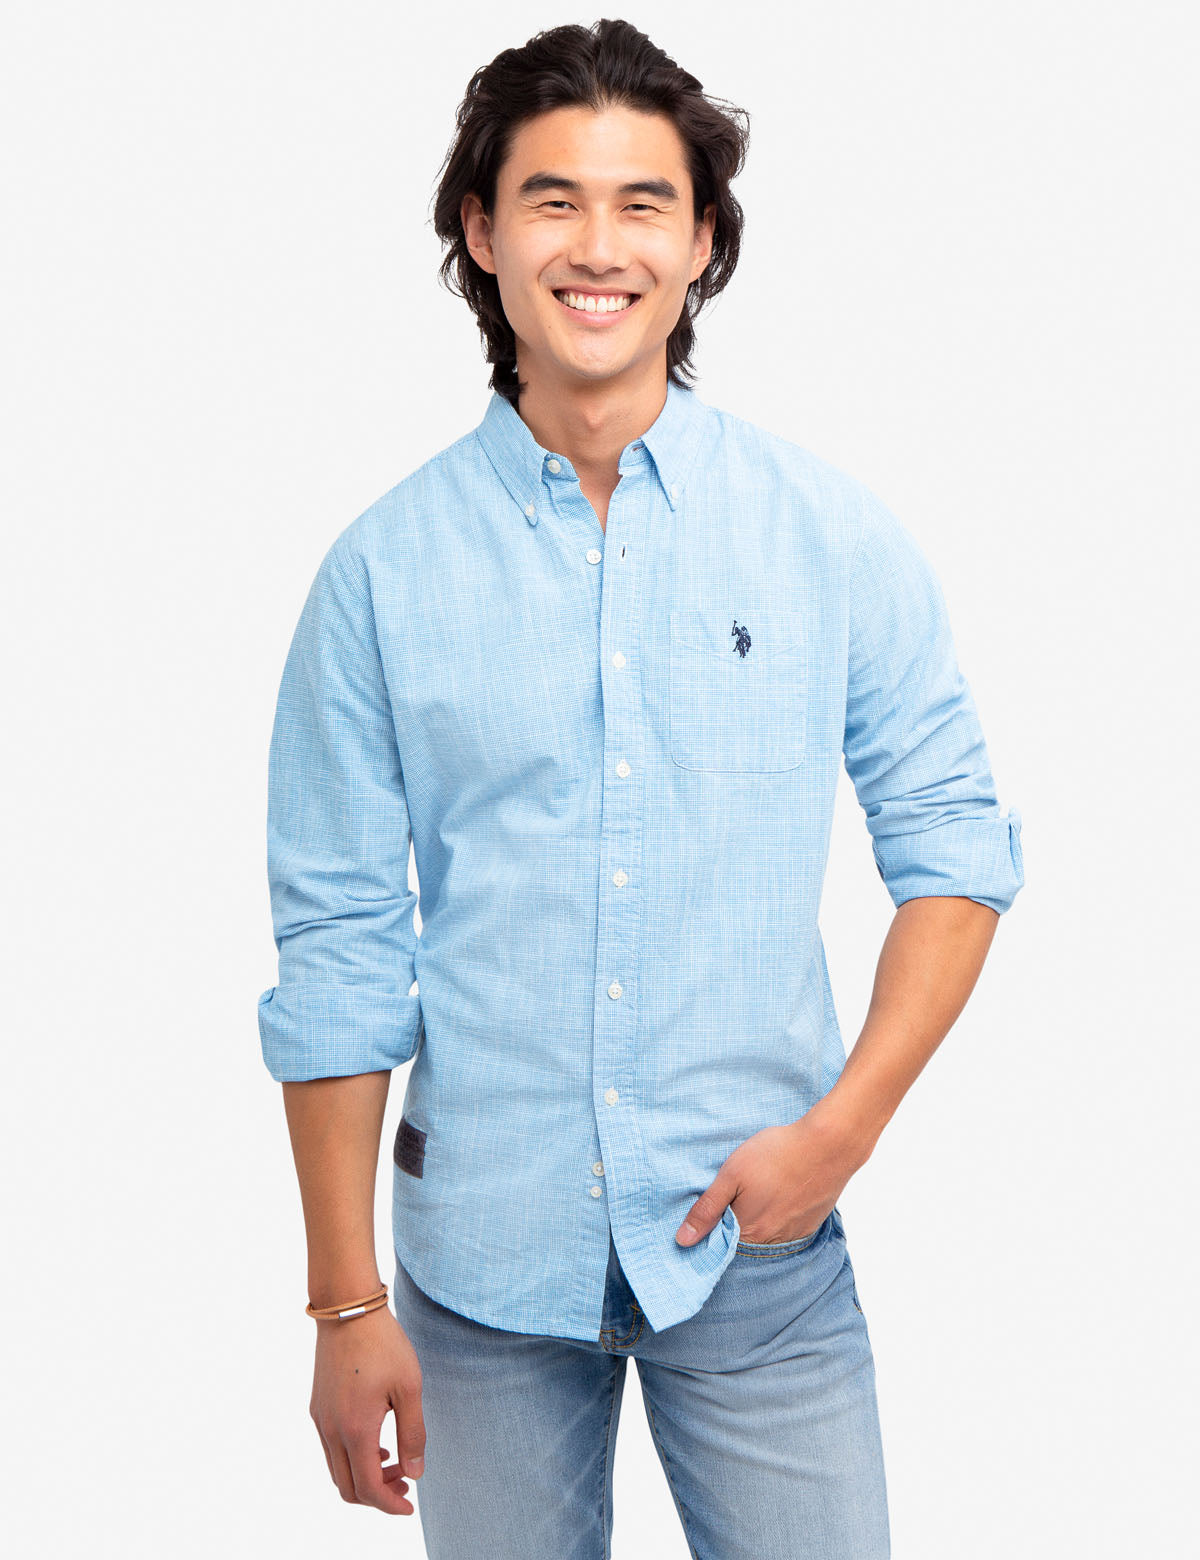 HOUNDSTOOTH SLUB SHIRT - U.S. Polo Assn.